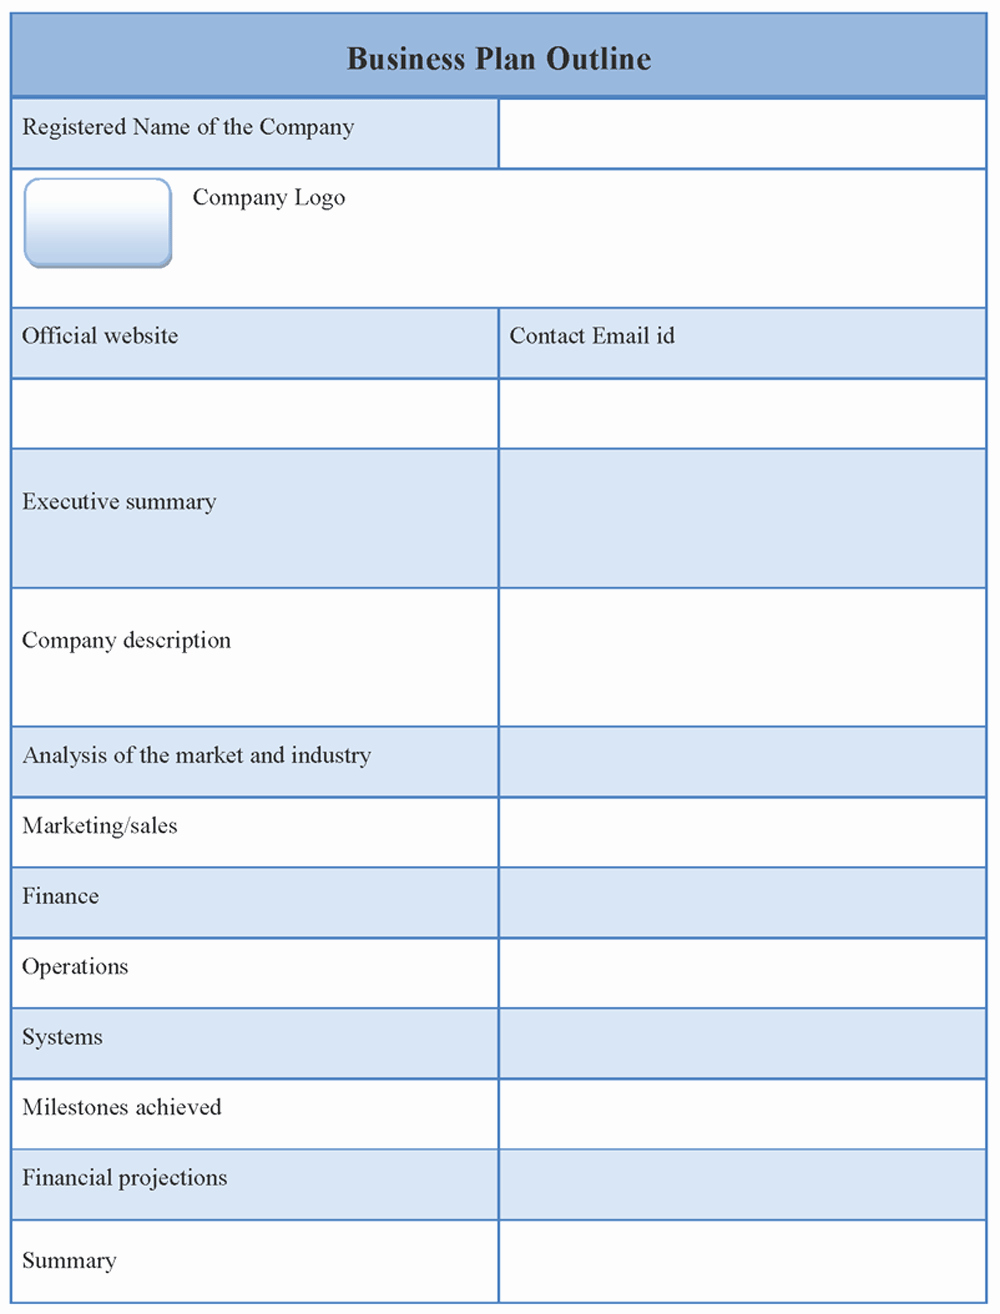 Business Plan Outline Template Free Beautiful Outline Template for Business Plan format Of Business